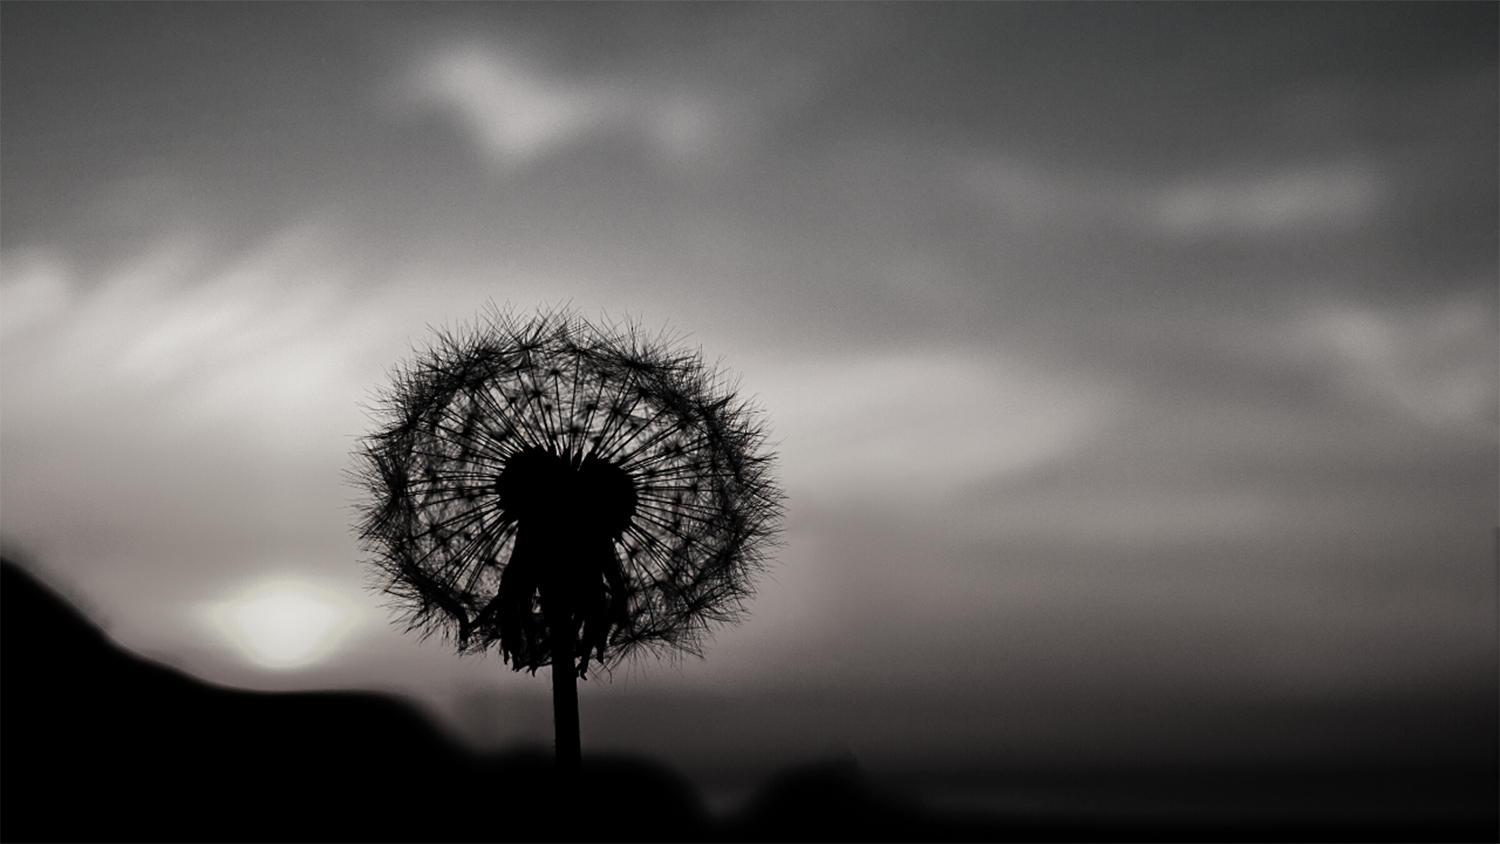 Dandelion flower with sky as backdrop